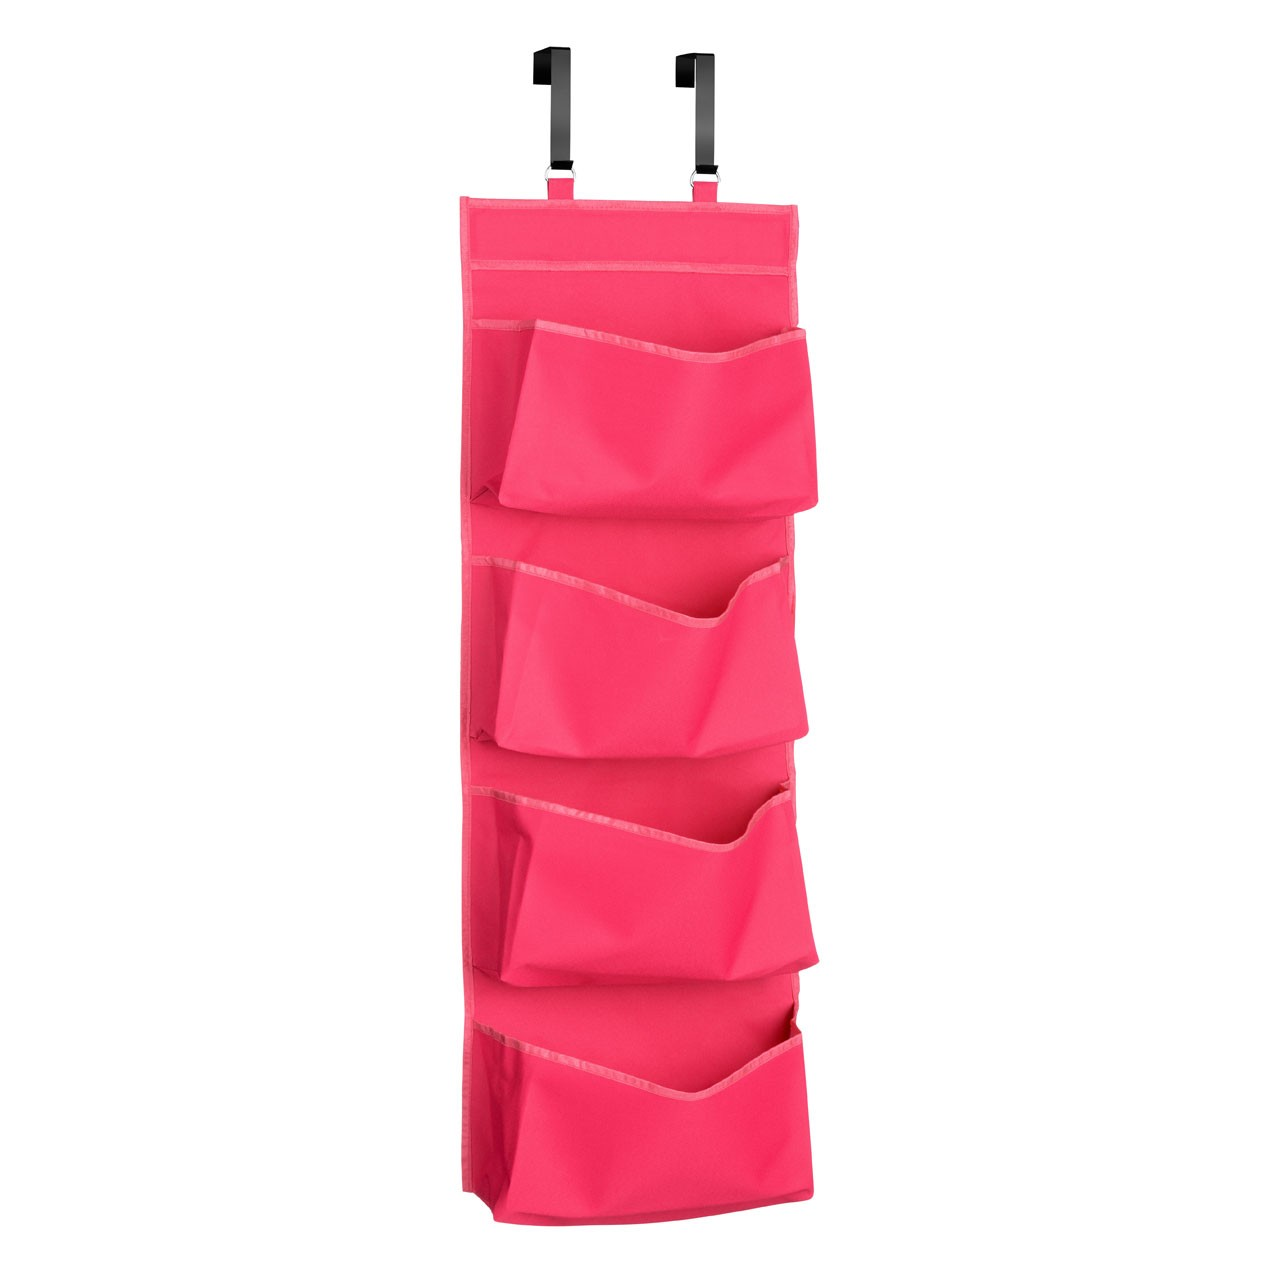 Prime Furnishing 4-Tier Over Door Hanging Organiser - Hot Pink